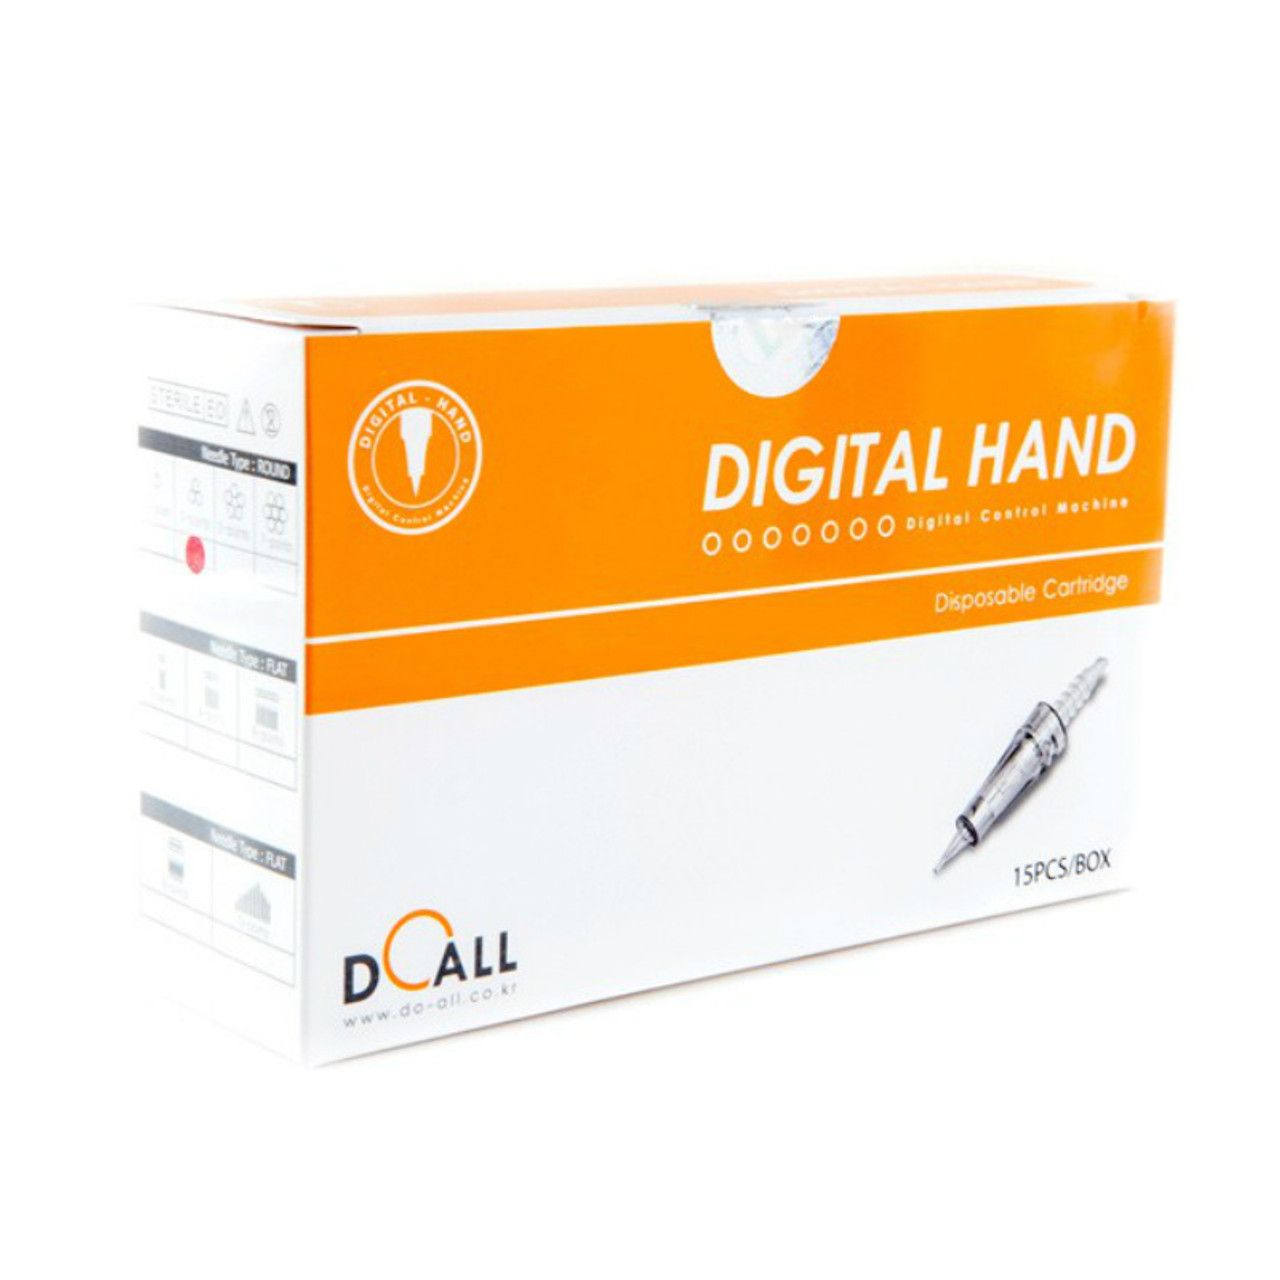 Do-All Digital Permanent Makeup (PMU) Cartridge Needle - 1R